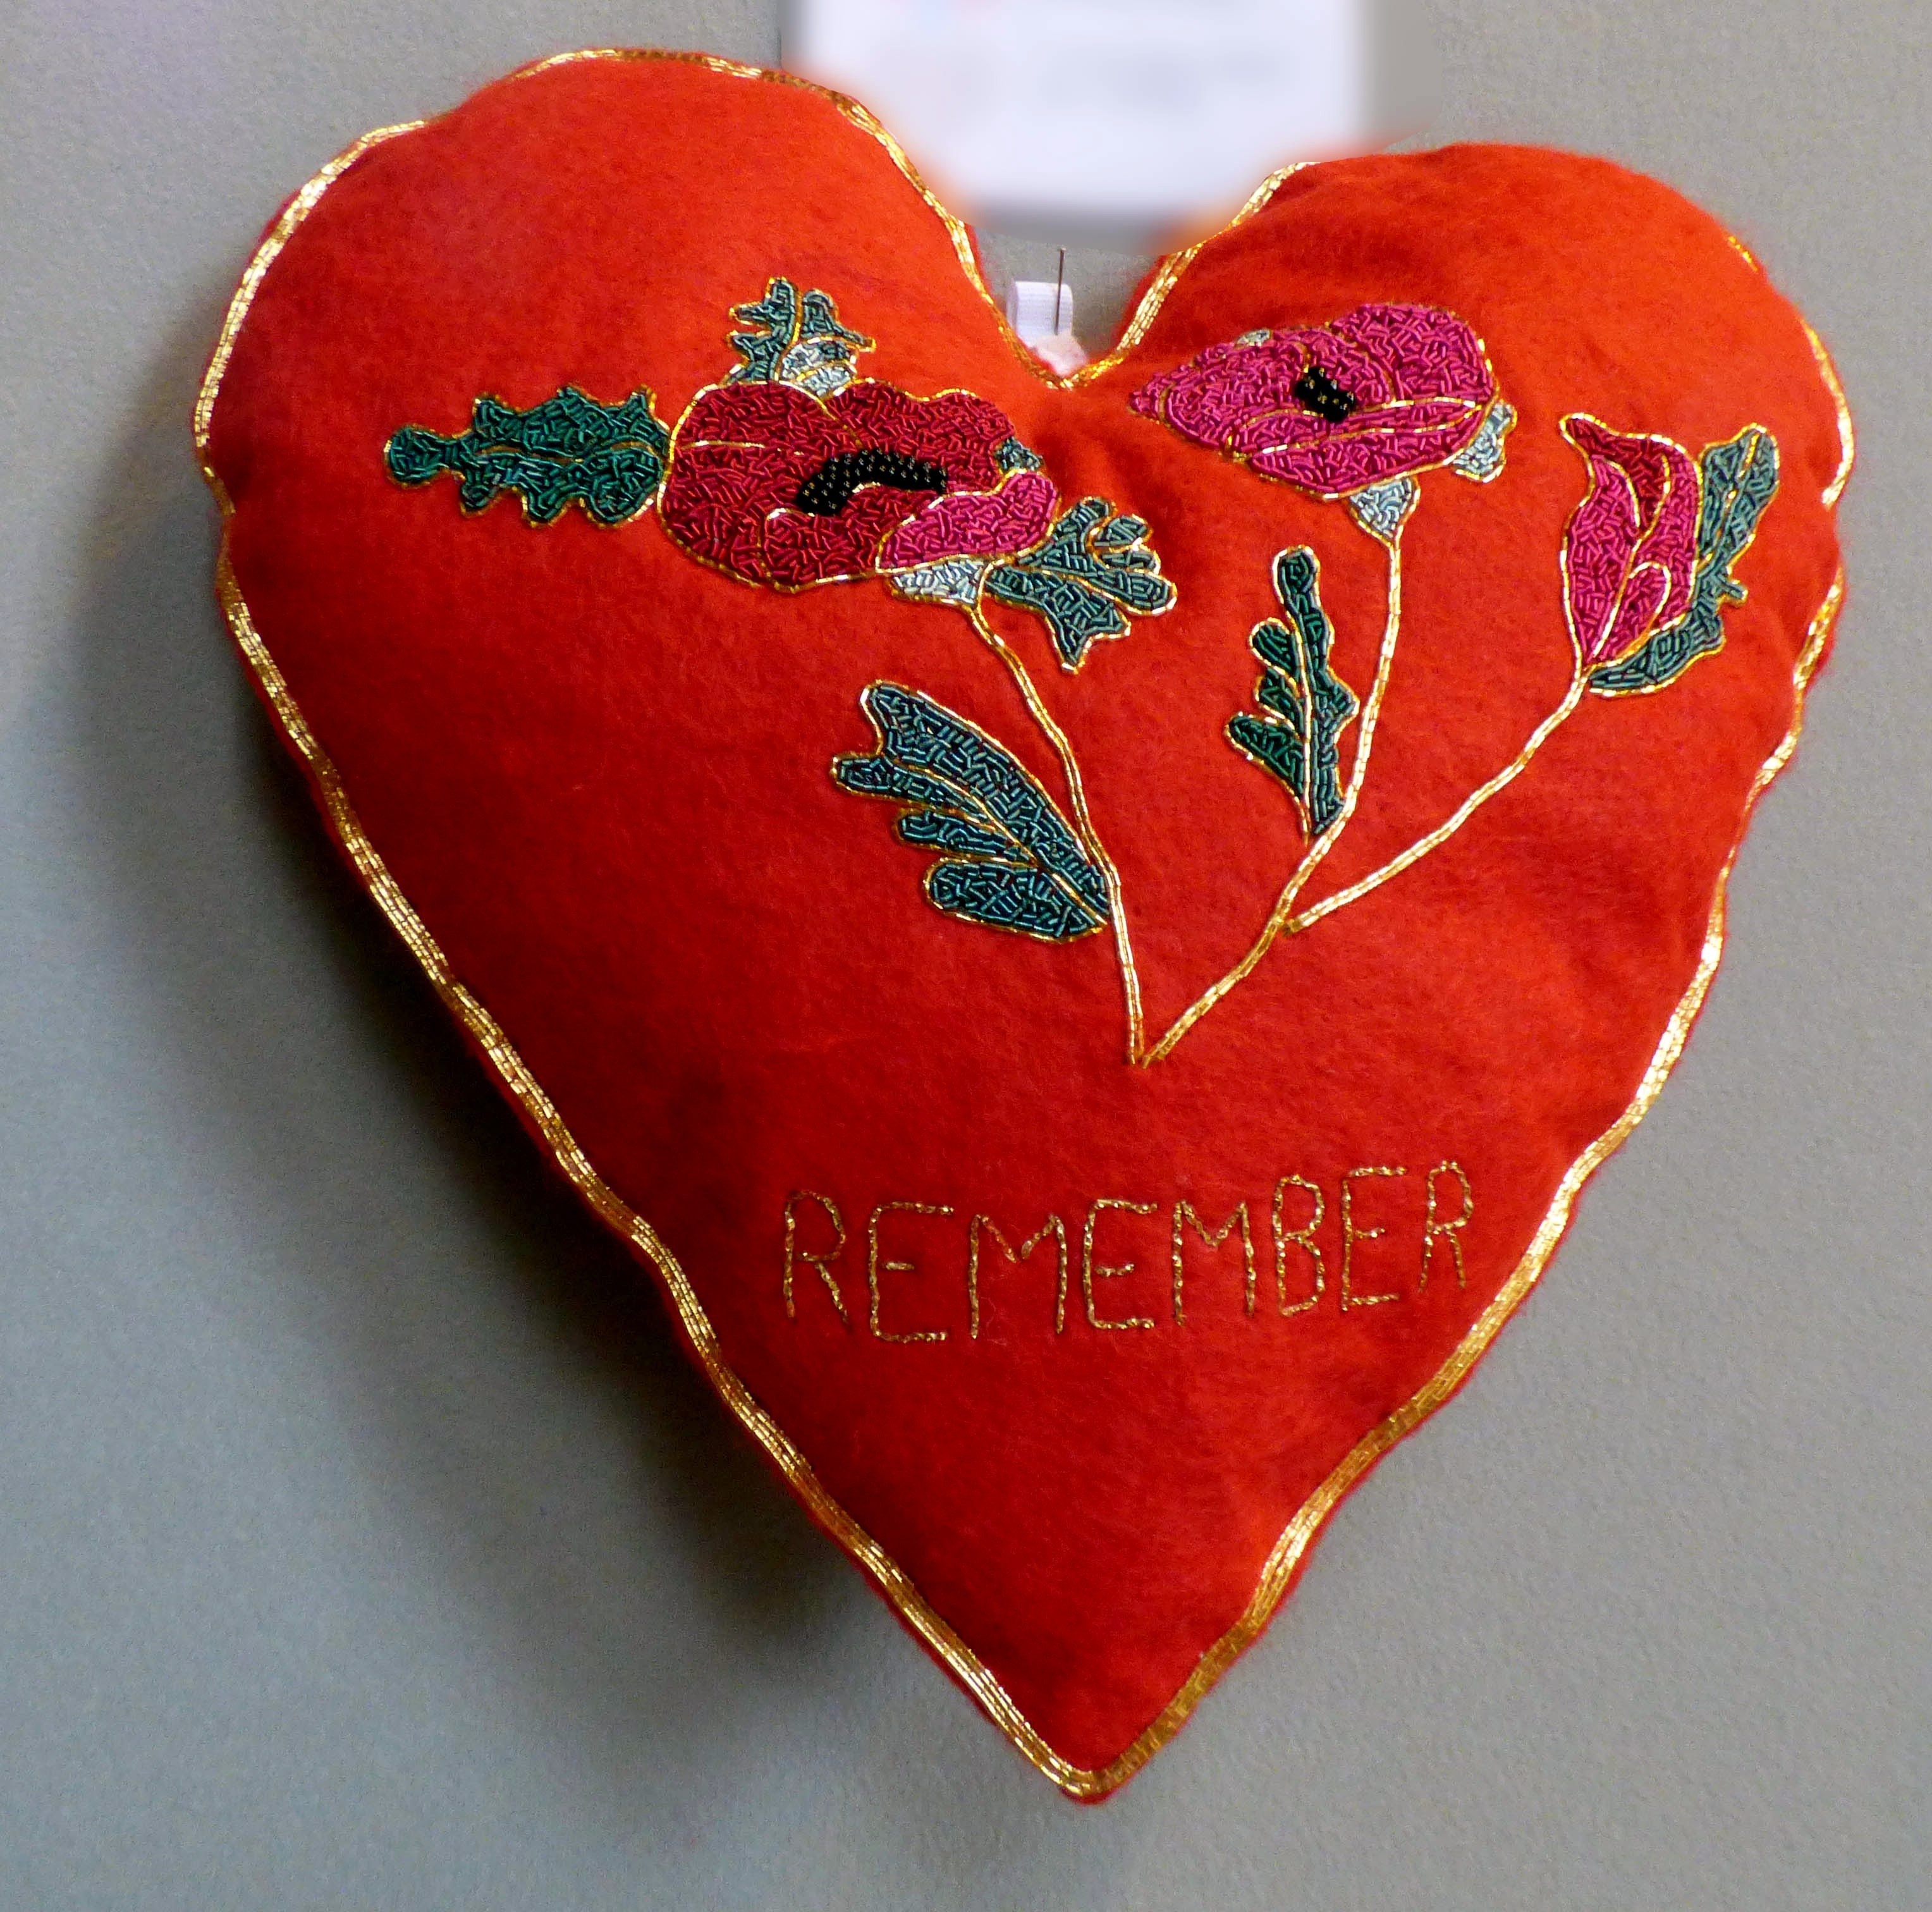 TO REMEMBER WORLD WAR 1 1914-18 by Christine Bardsley, 100 Hearts exhibition, Liverpool Cathedral, Sept 2018